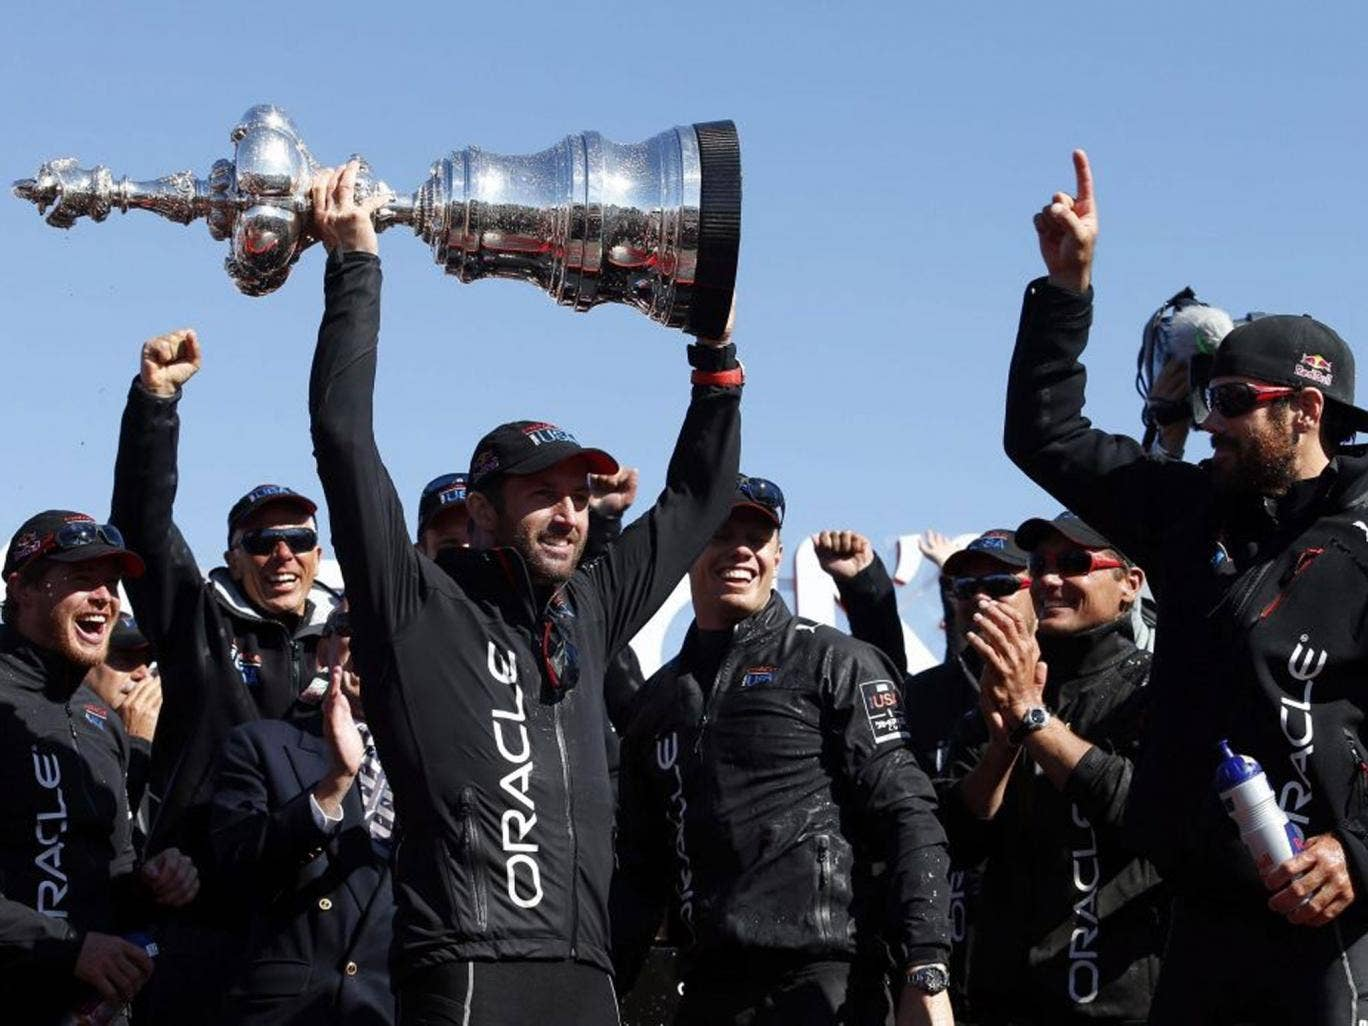 Ben Ainslie collects the mammoth Americas Cup trophy